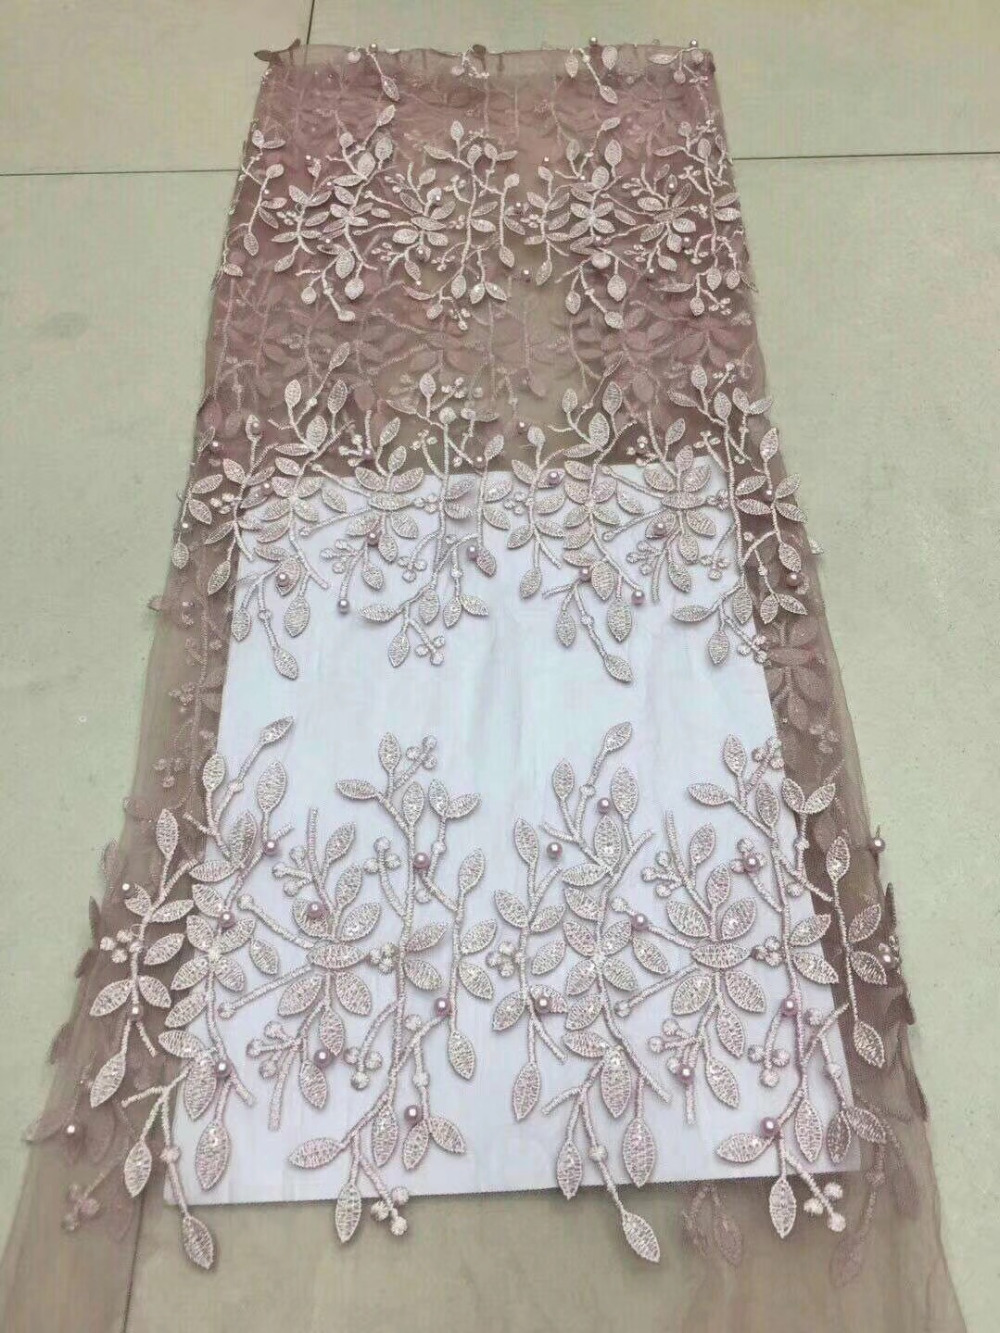 Best Selling 2018 African Cord Lace High Quality French Lace With Plenty Beaded or African Lace Fabric For Nigerian Lace DressBest Selling 2018 African Cord Lace High Quality French Lace With Plenty Beaded or African Lace Fabric For Nigerian Lace Dress